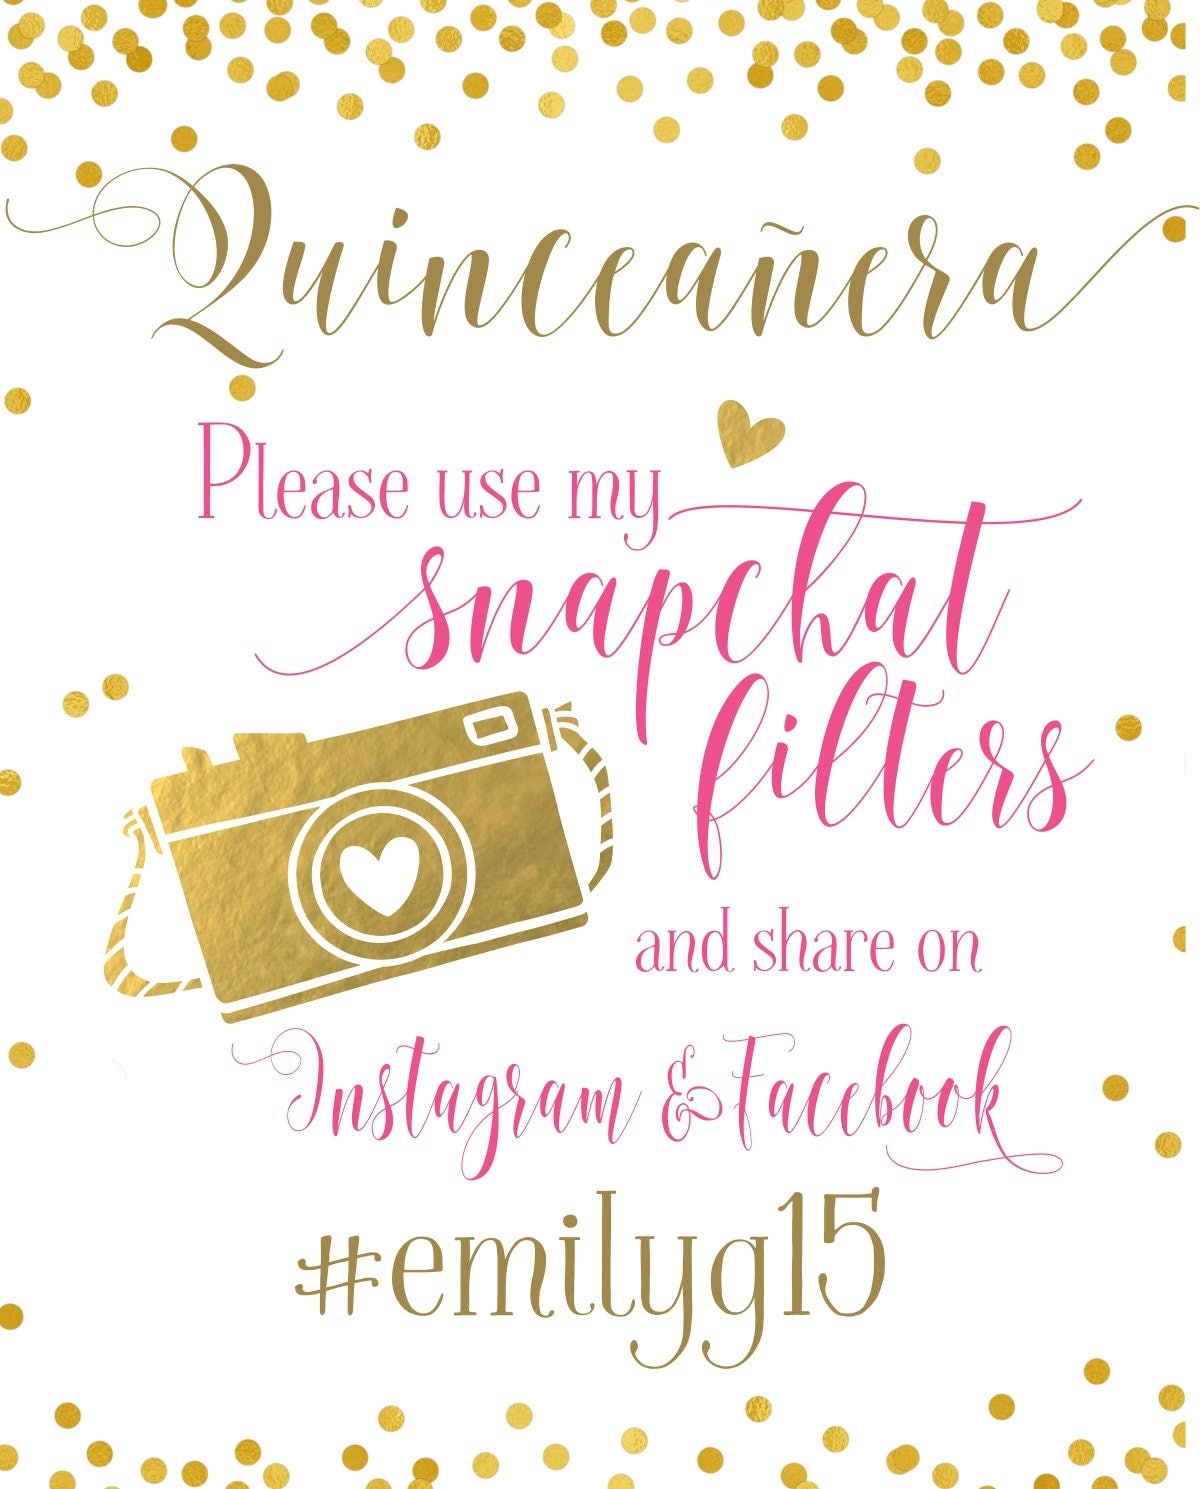 graphic regarding Printable Snapchat Filters titled Cute 16 Snapchat Filter Quinceañtechnology Celebration Indication